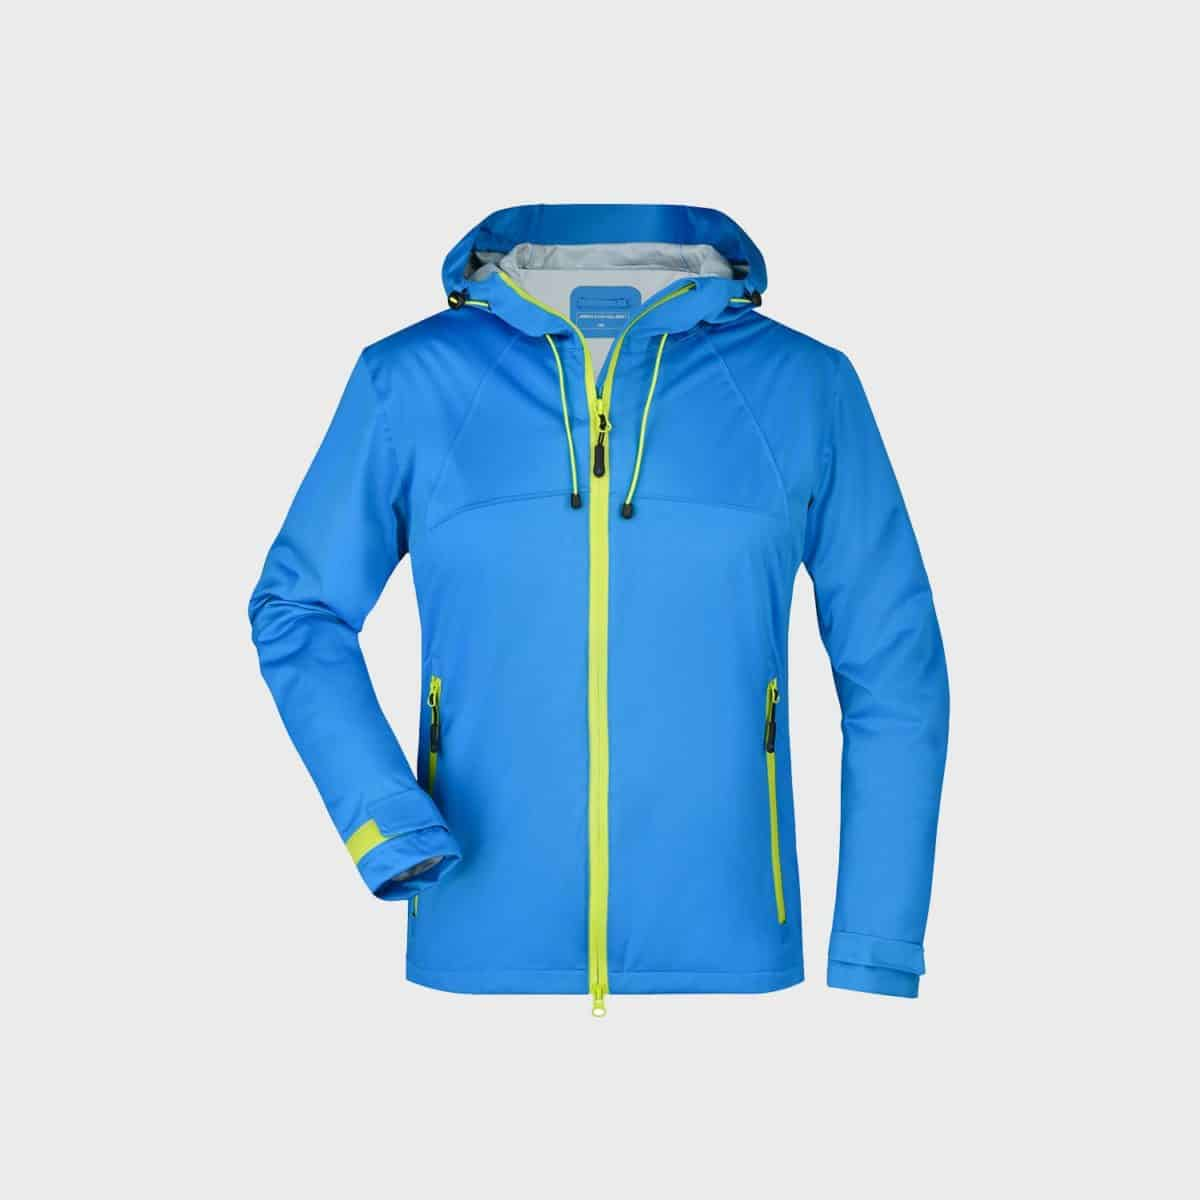 outdoor-jacket-damen-aqua-acid-yellow-kaufen-besticken_stickmanufaktur